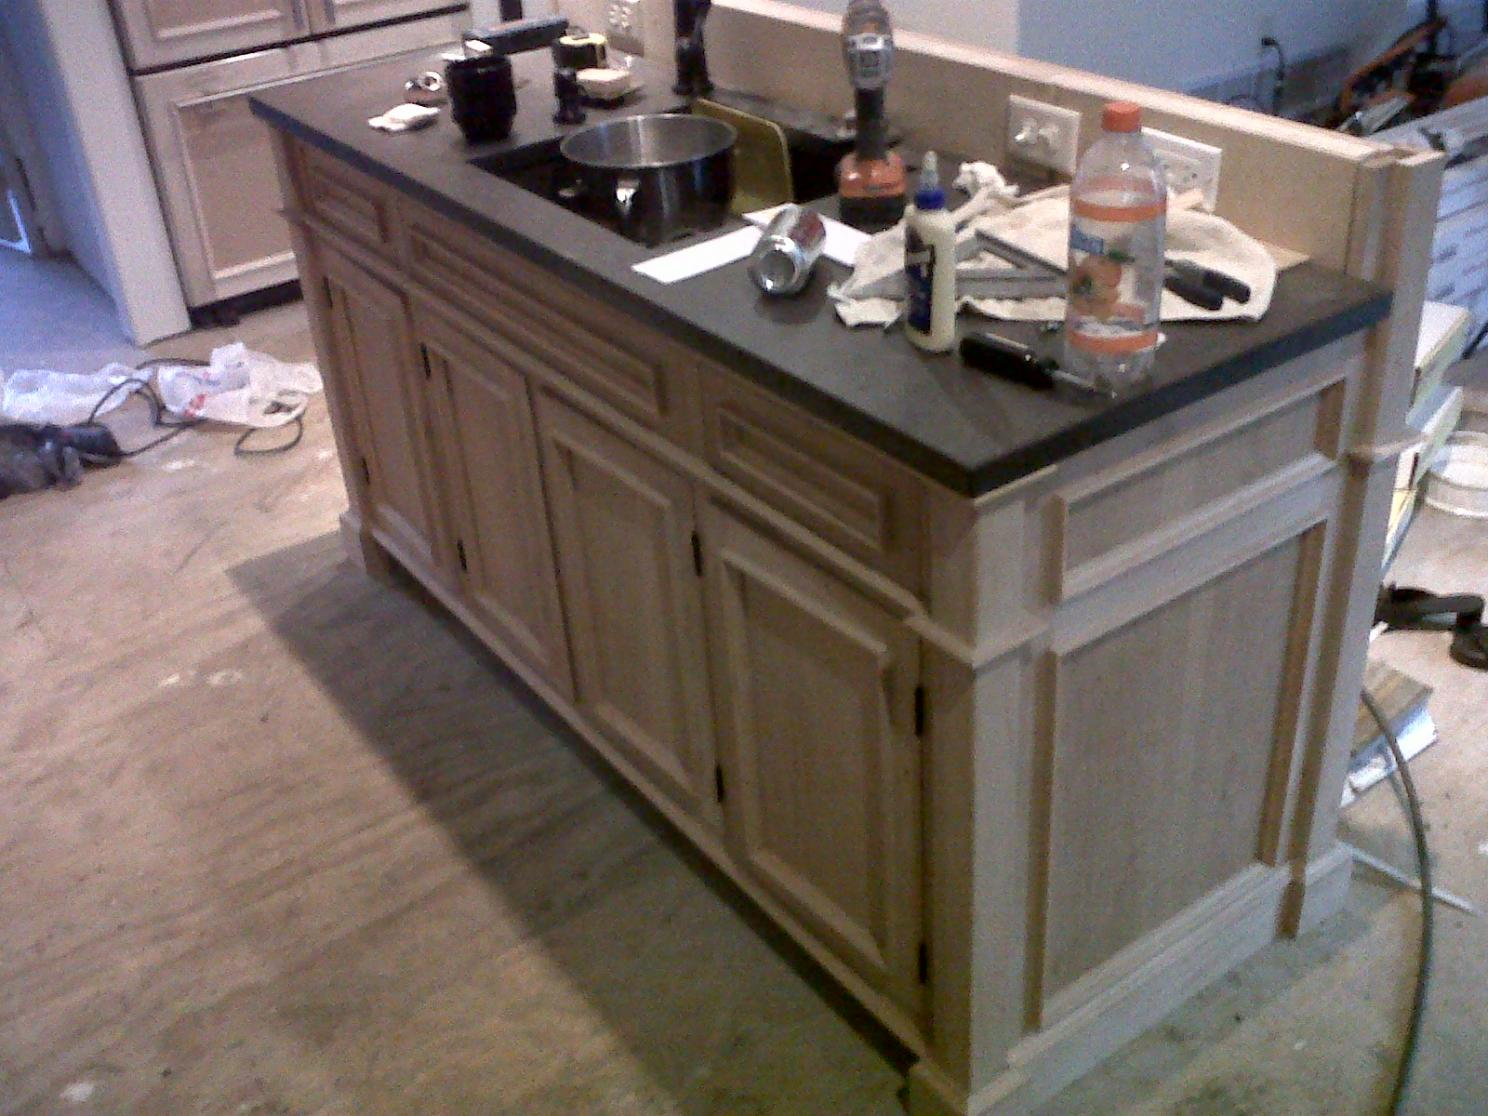 Your Cabinet Joinery? - Finish Carpentry - Contractor Talk